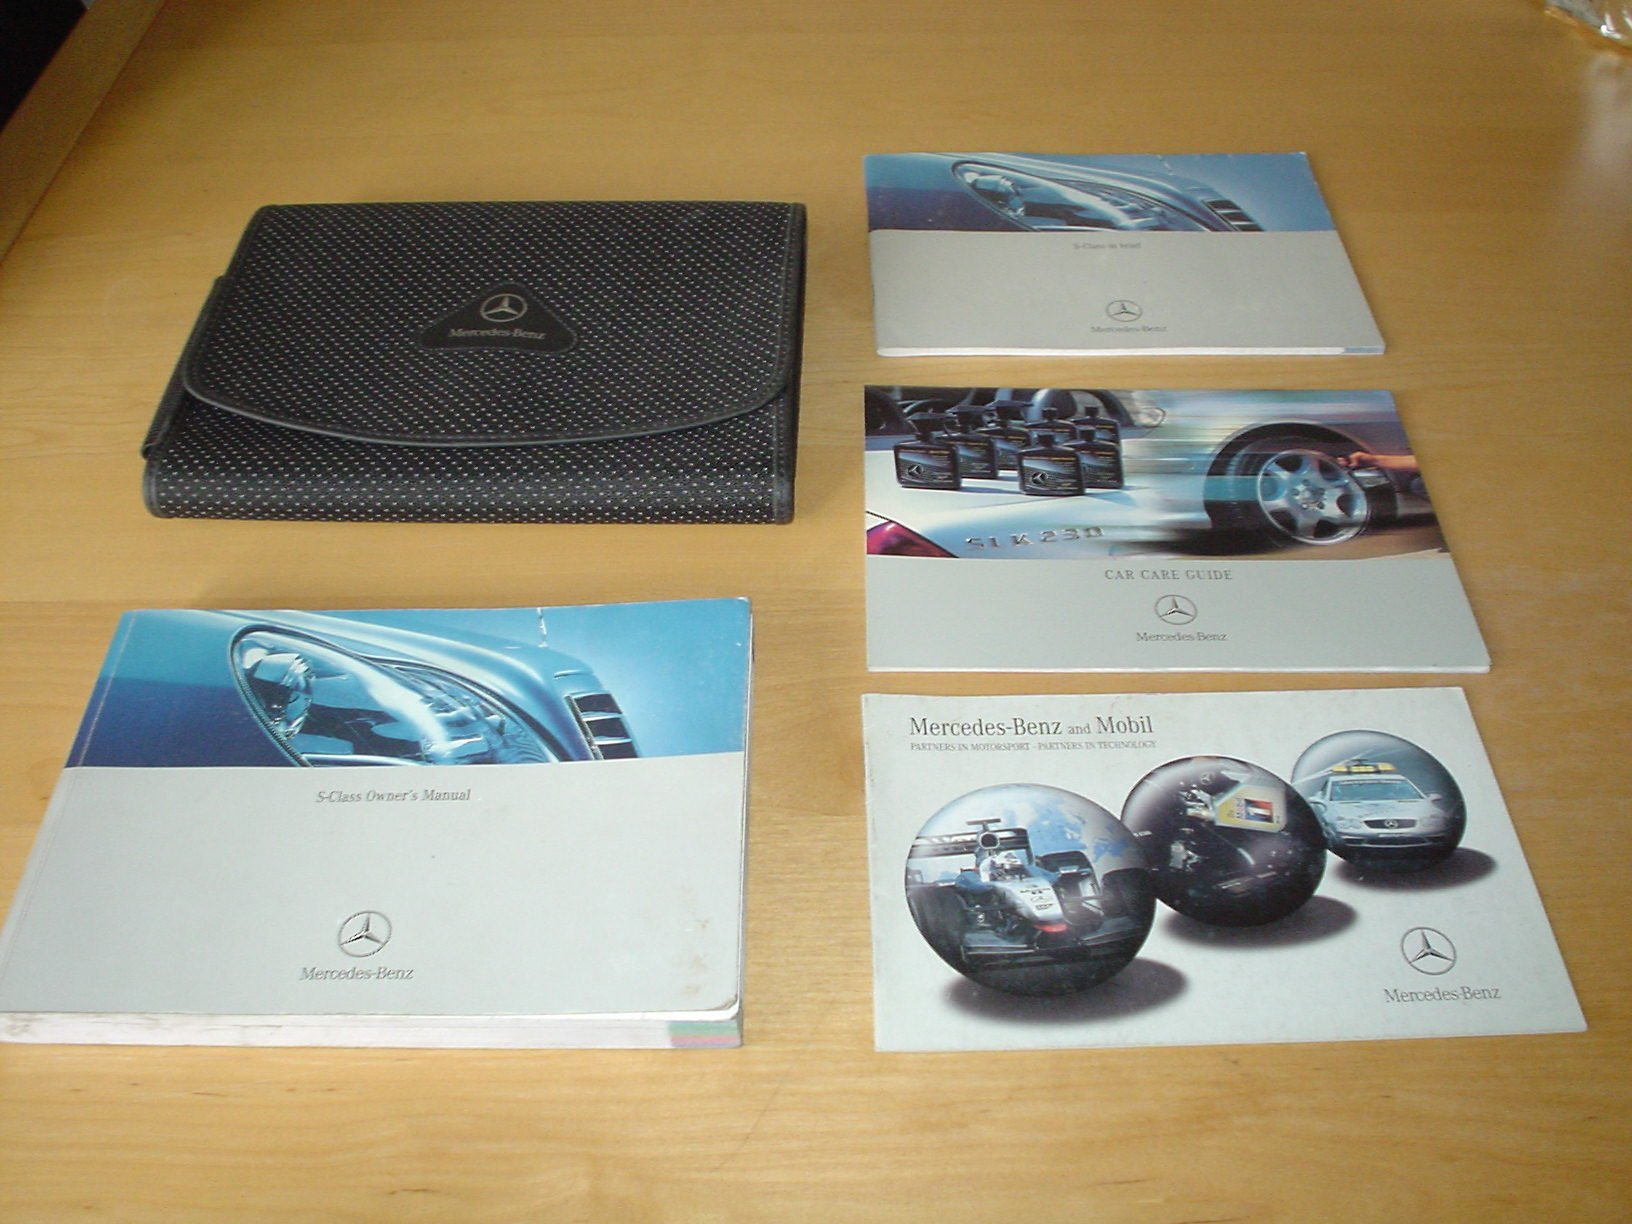 MERCEDES BENZ W220 S-CLASS S280 S320 CDI S350 4MATIC S400 CDI S430 S500  S600 S55 AMG OWNERS MANUAL HANDBOOK (1999 - 2006) (S 280 320 430 500) -  OWNER'S HAND ...